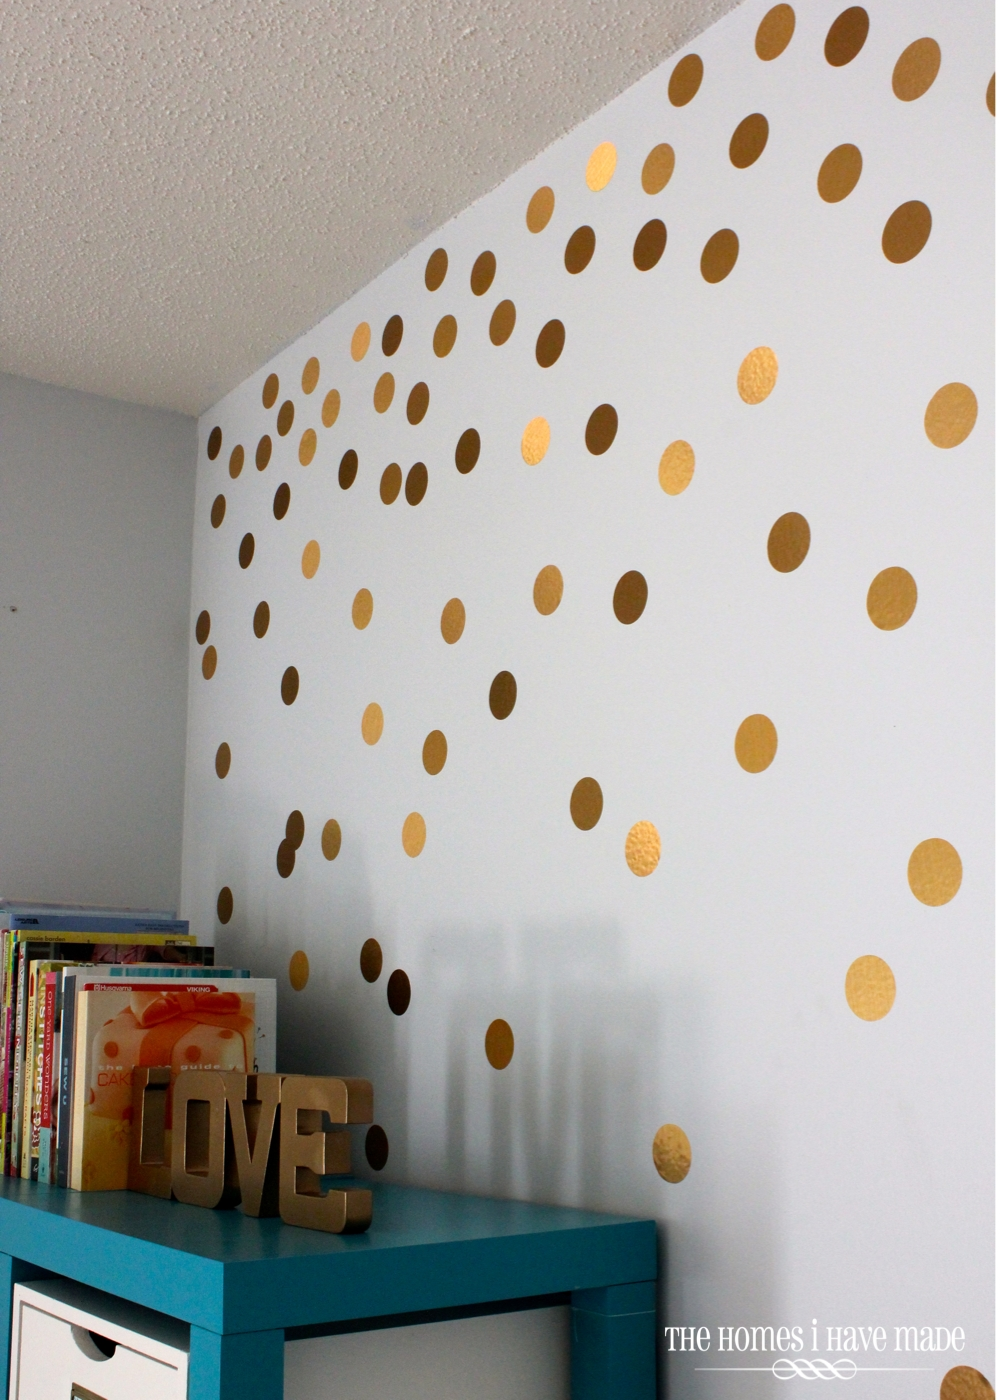 Pictures Of Diy Wall Decor : Diy gold polka dot wall the homes i have made